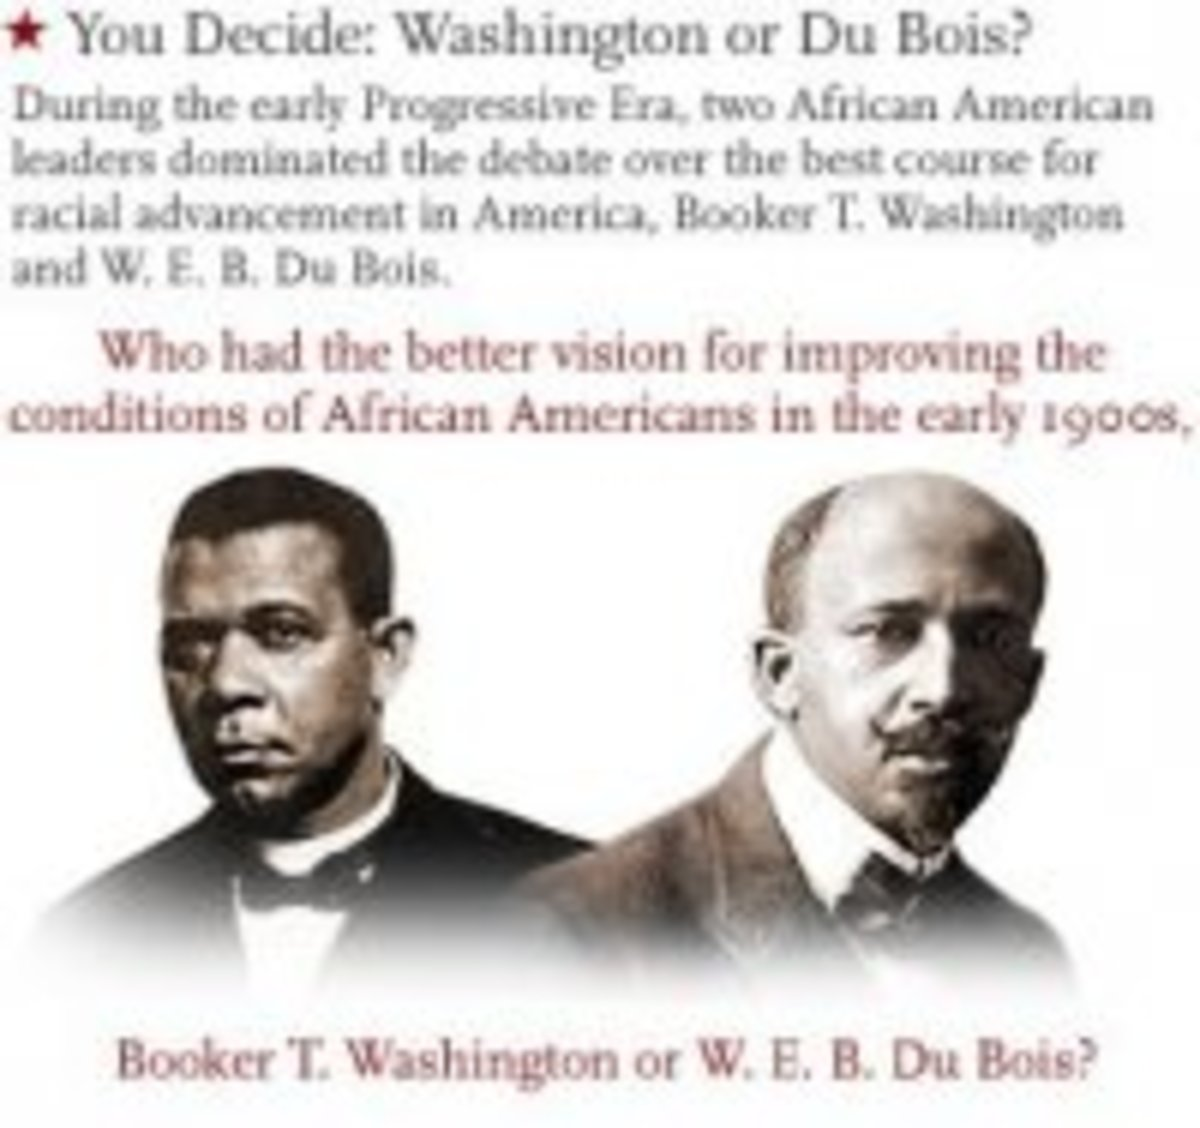 Booker T. Washington and W.E.B. Du Bois – leaders with different ideas but common goal